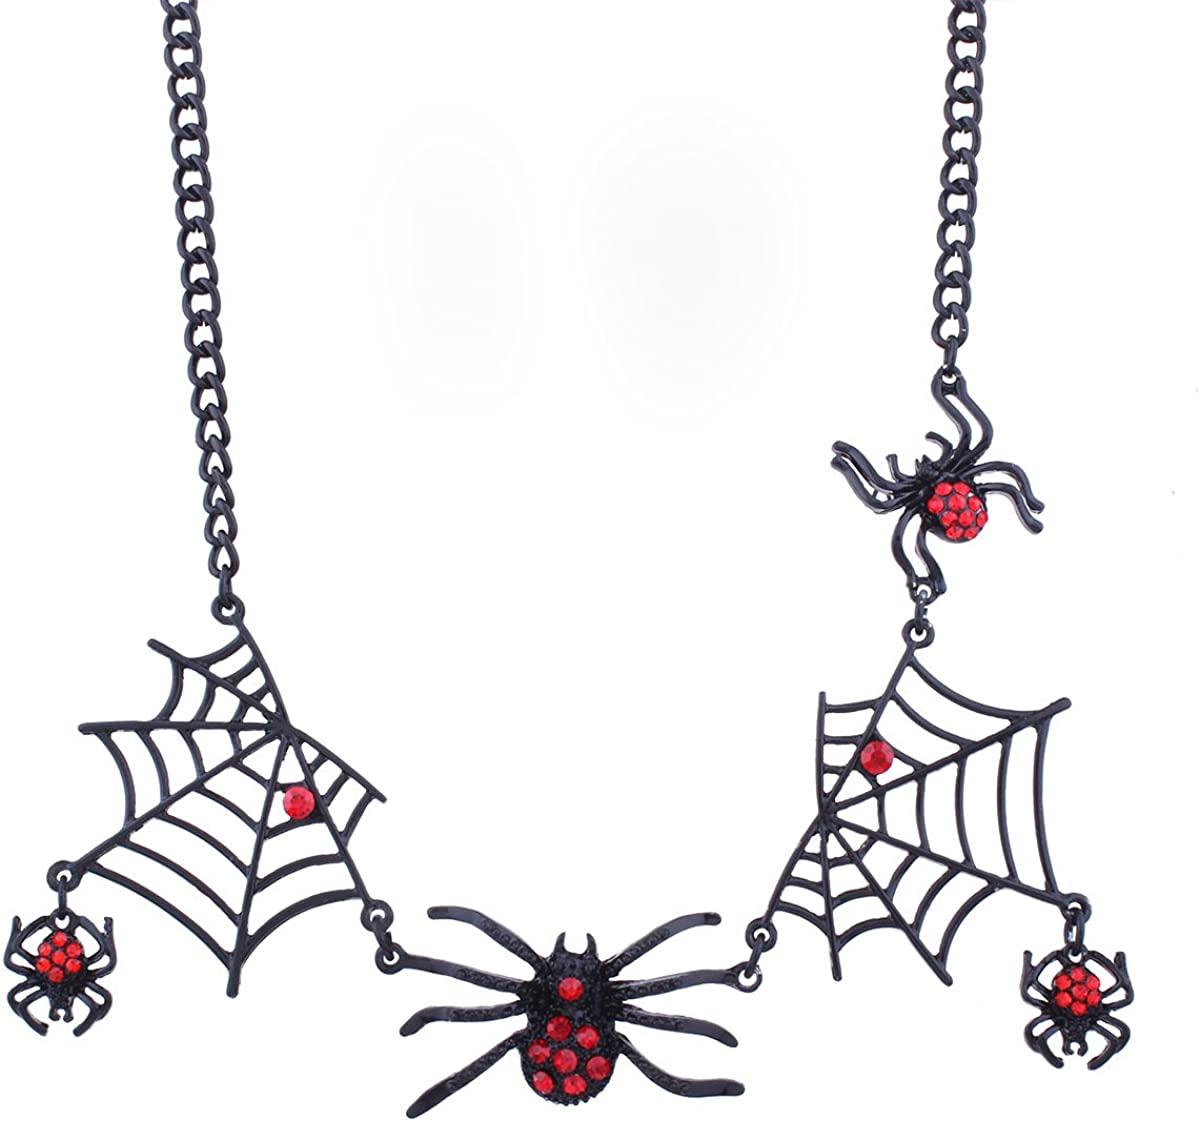 17Rainbow Halloween Jewelry Red Rhinestone Spiders Spider Web Steampunk Pendants Necklace Earrings Jewellery Set